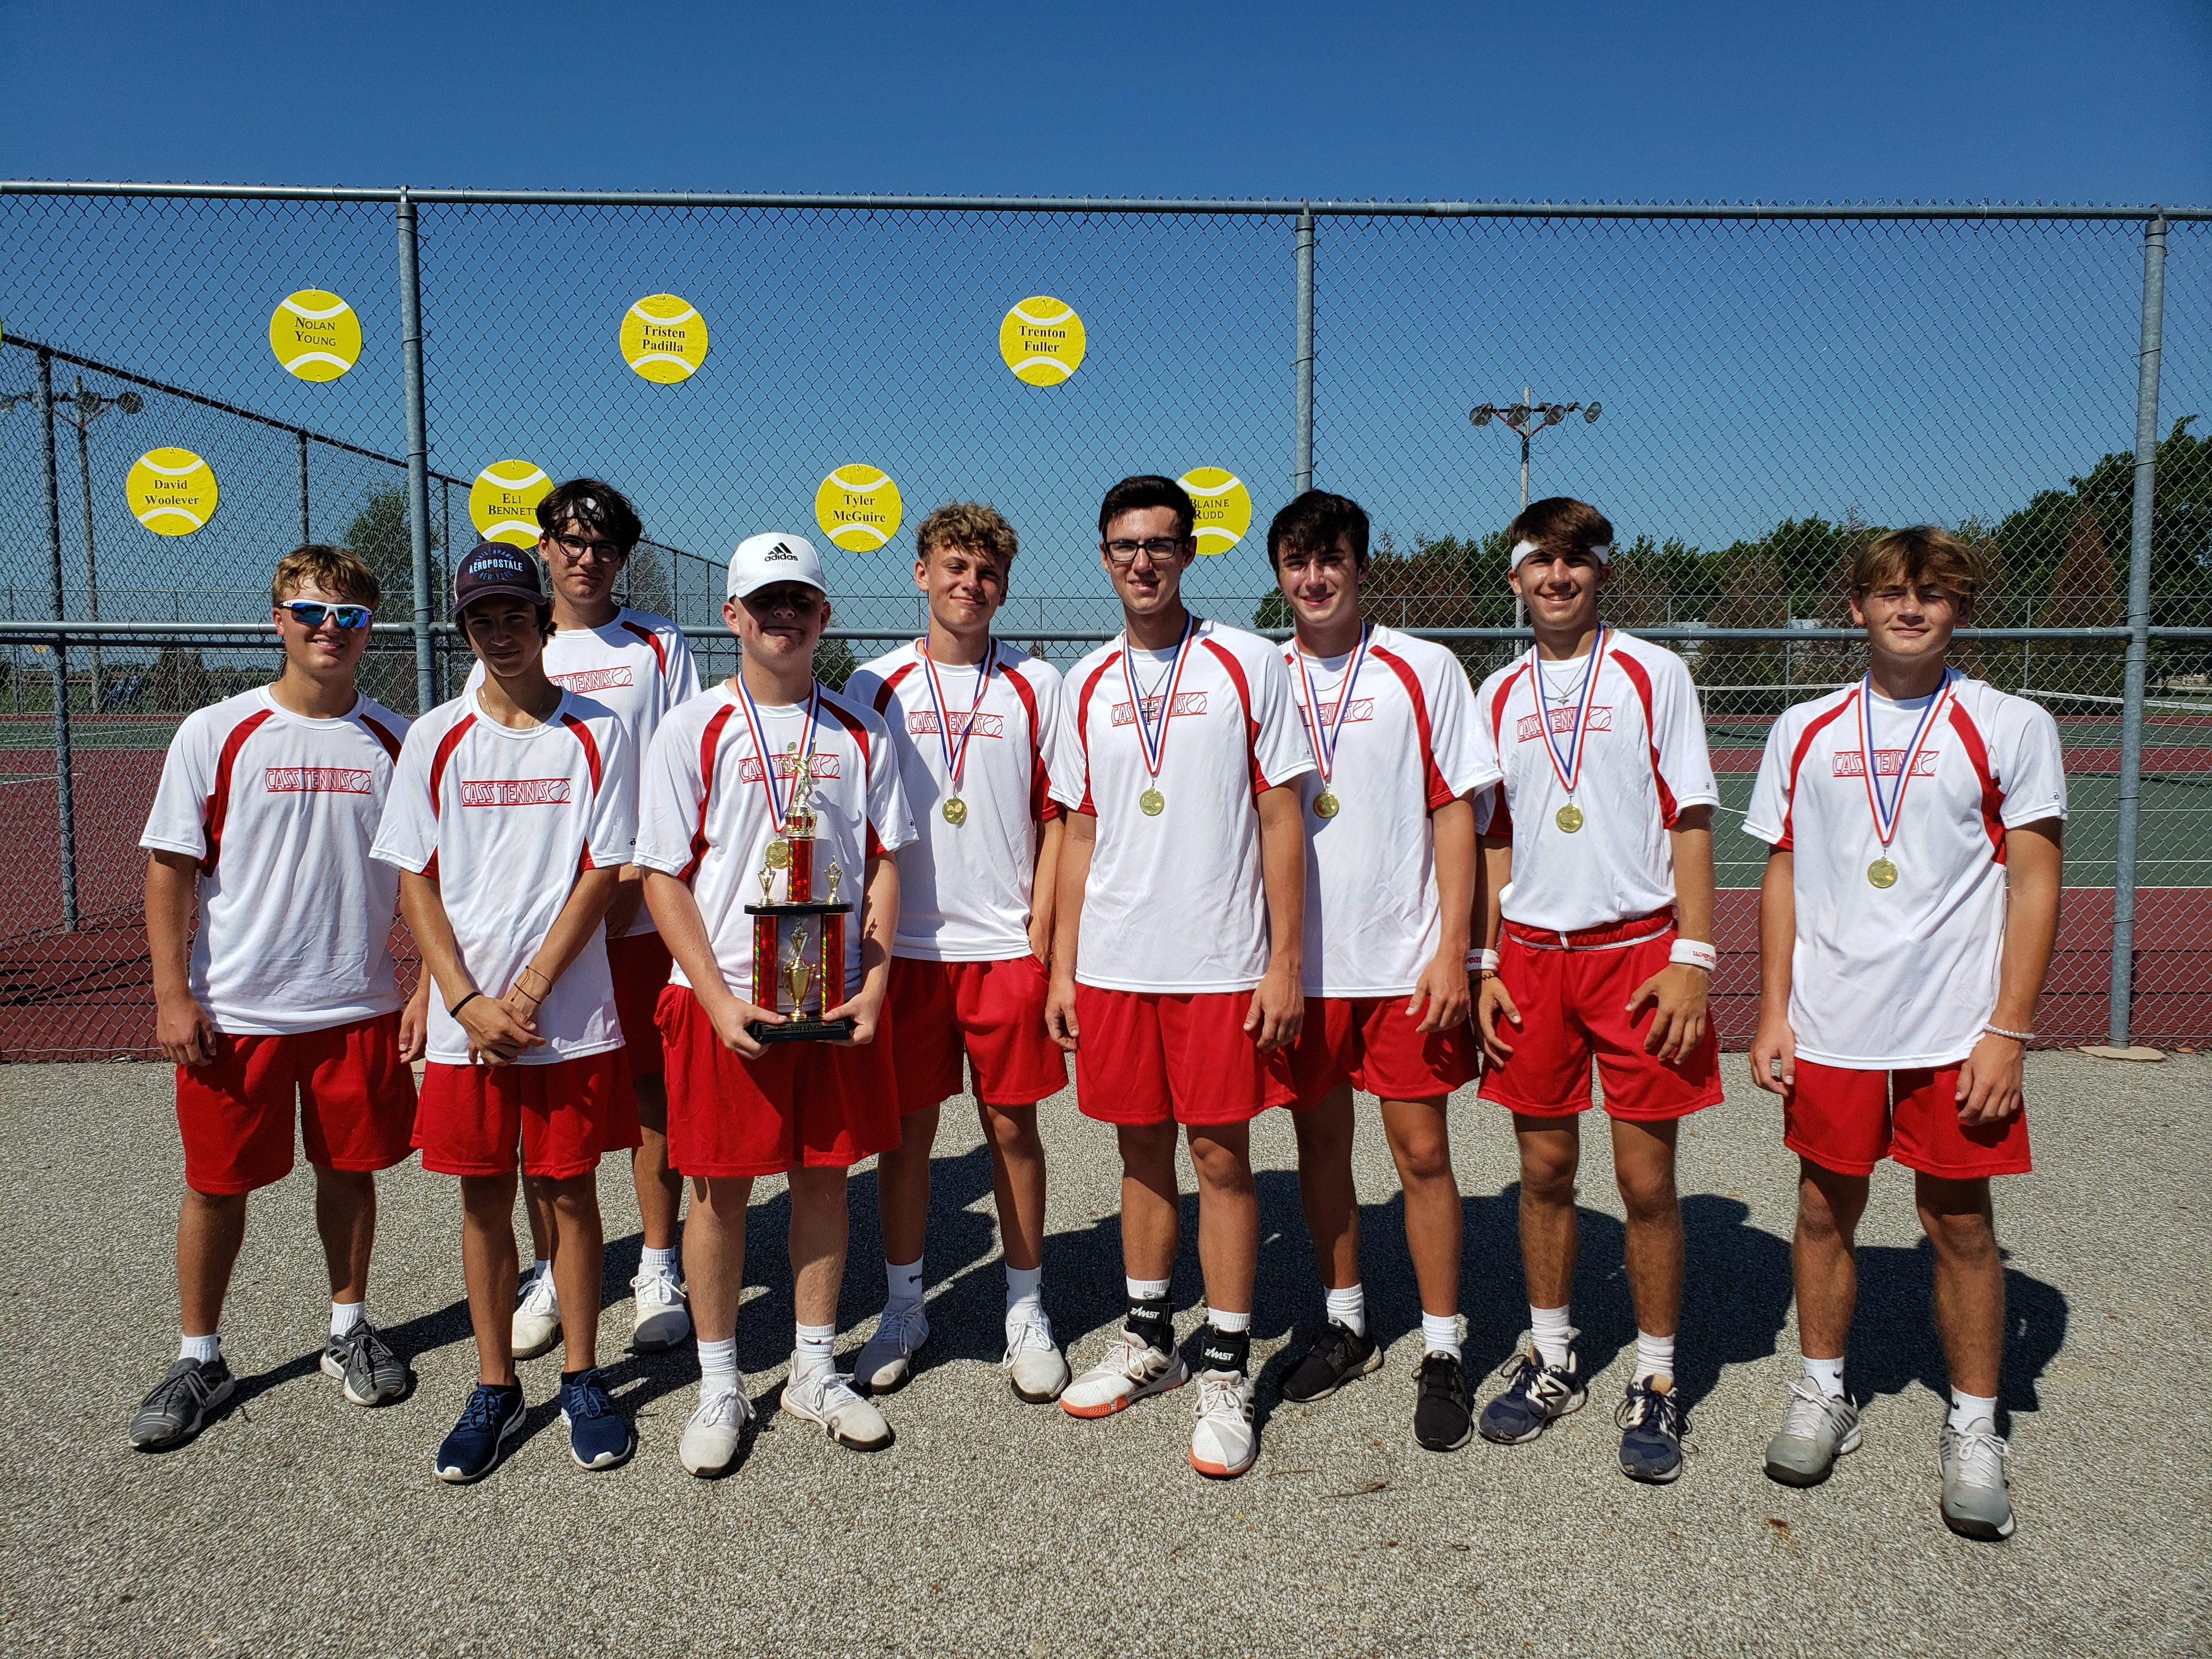 Cass Boys Tennis team takes home the trophy at the Cass Invitational